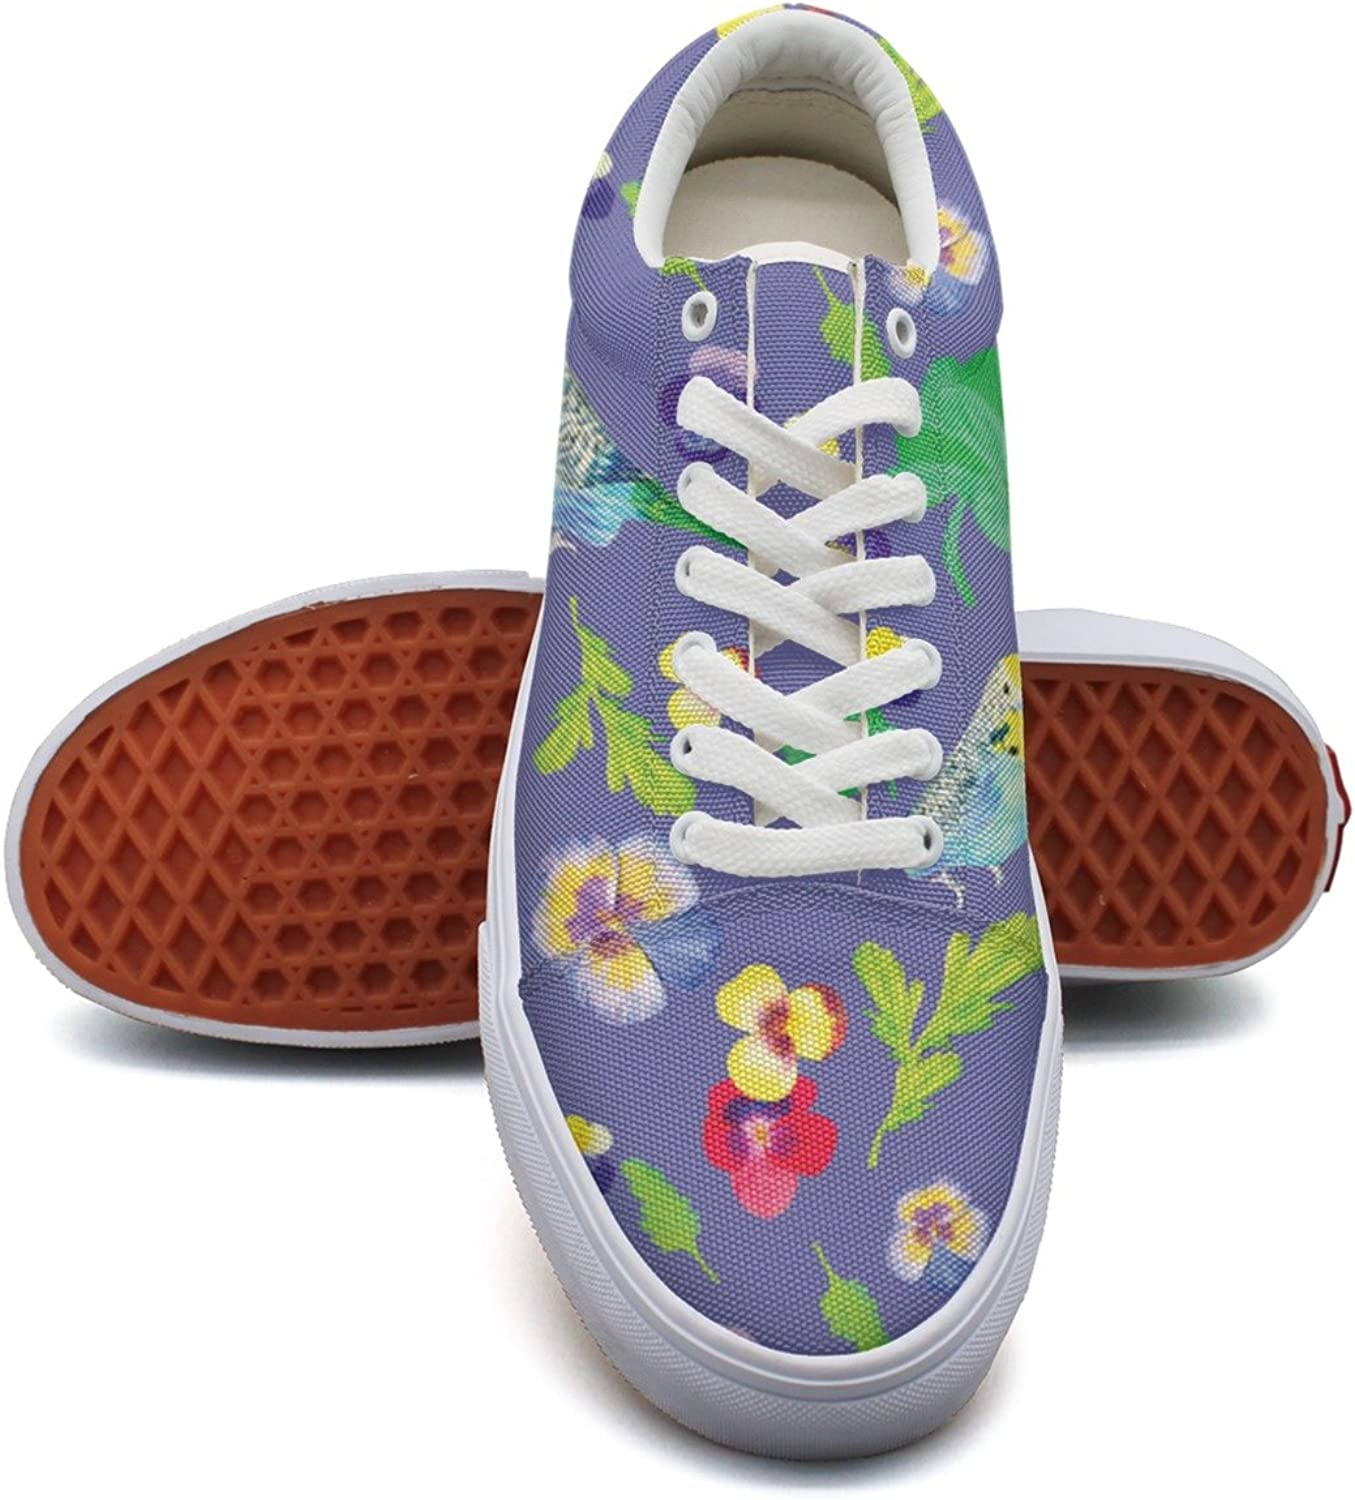 Hjkggd fgfds Casual Parred Birds and Pansy Flowers Women Girls Canvas shoes